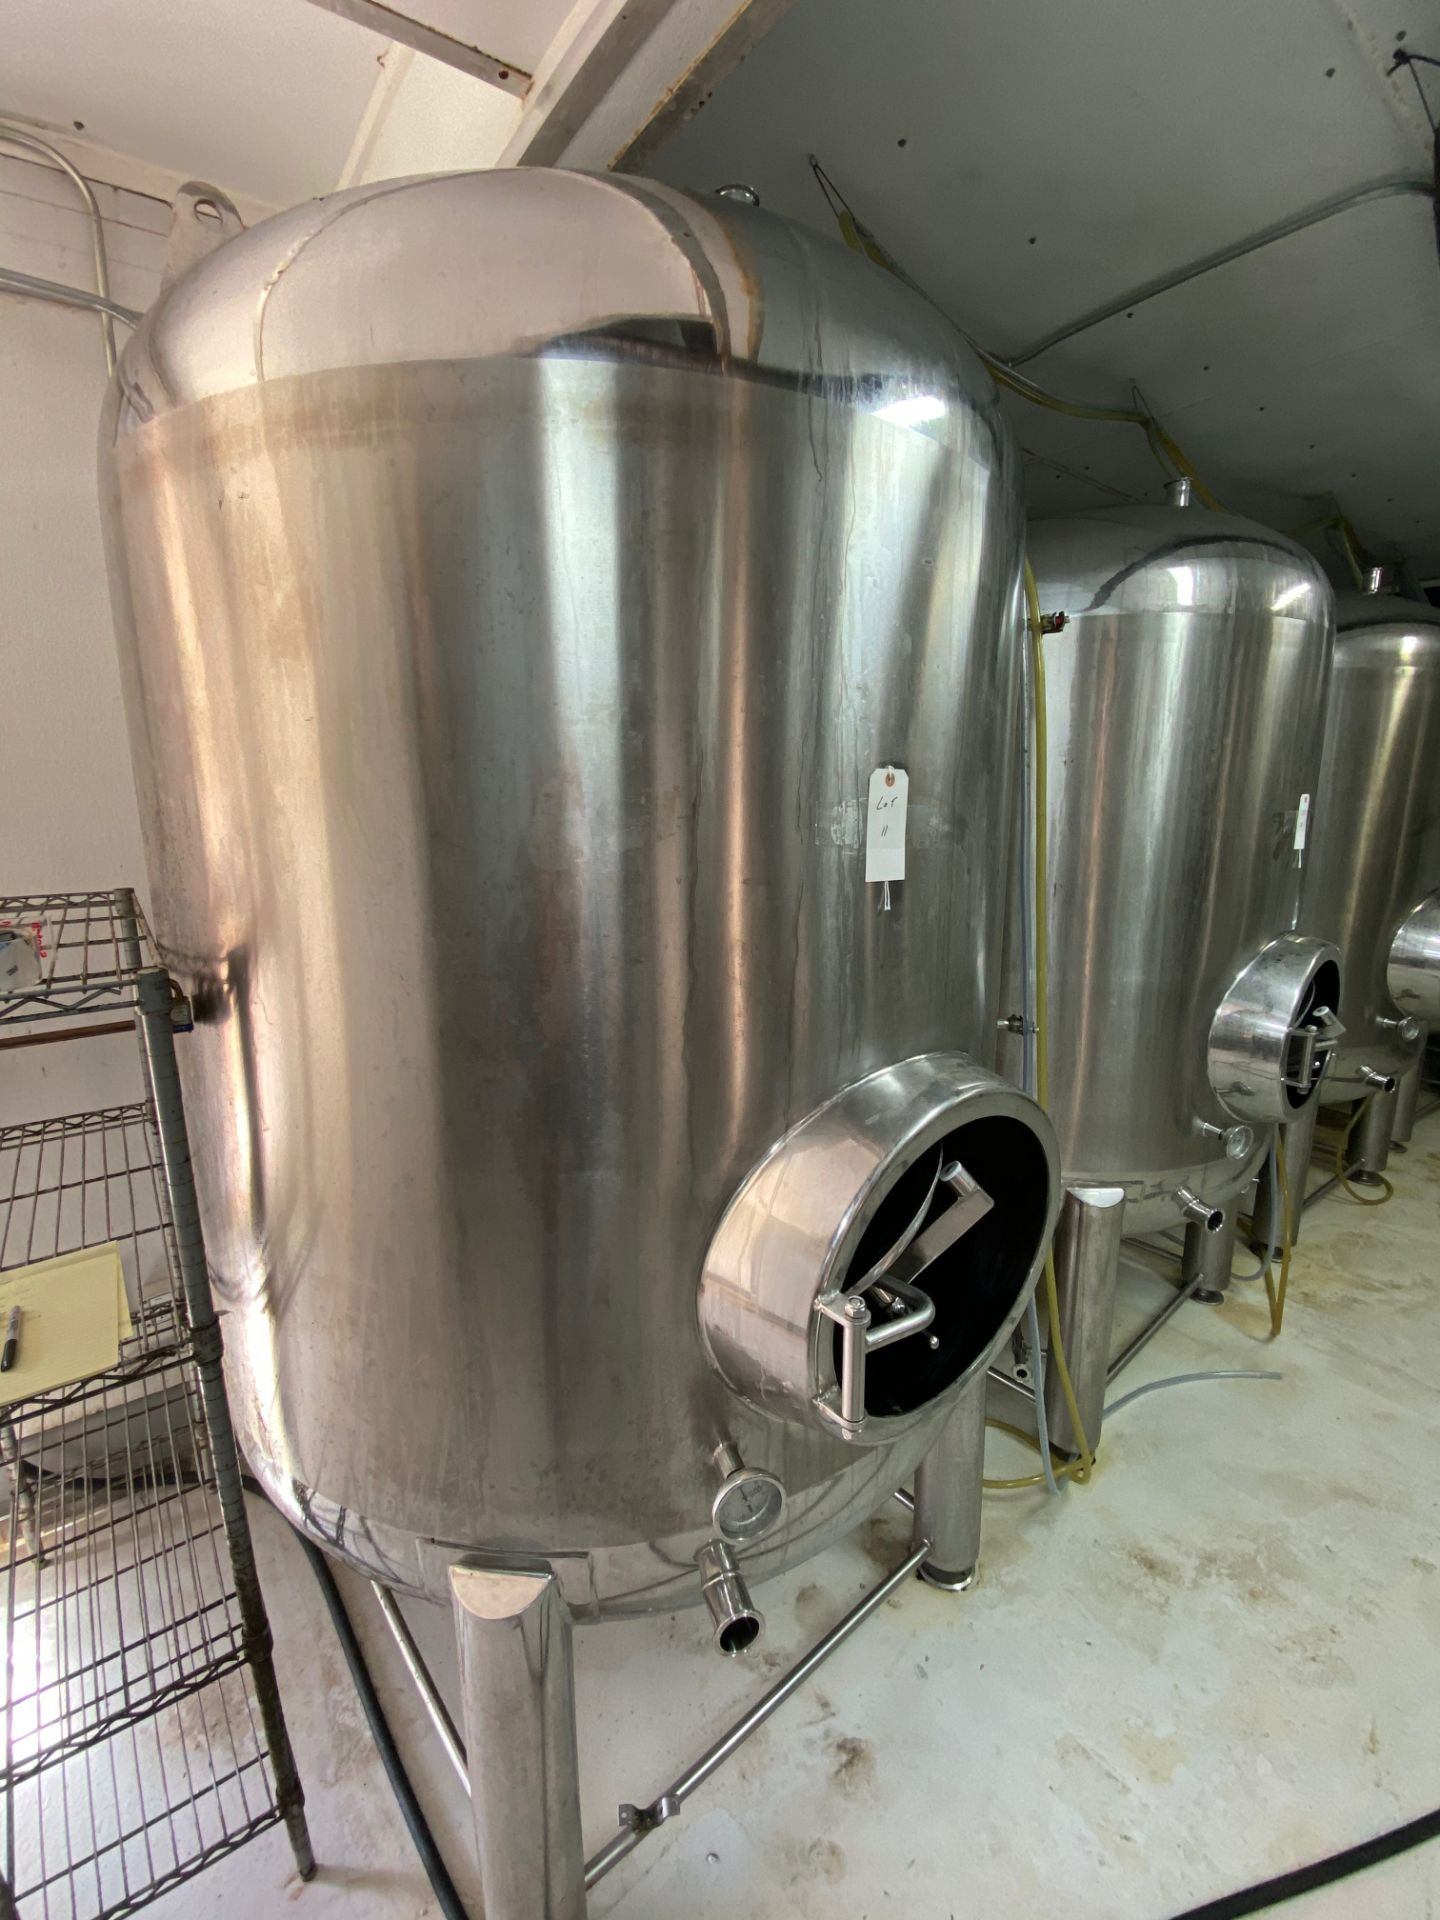 Lot 11 - 2014 Criveller 20 BBL Brite Tank, 304 Stainless Steel, Single Wall, D | Sub to Bulk | Rig Fee: $350